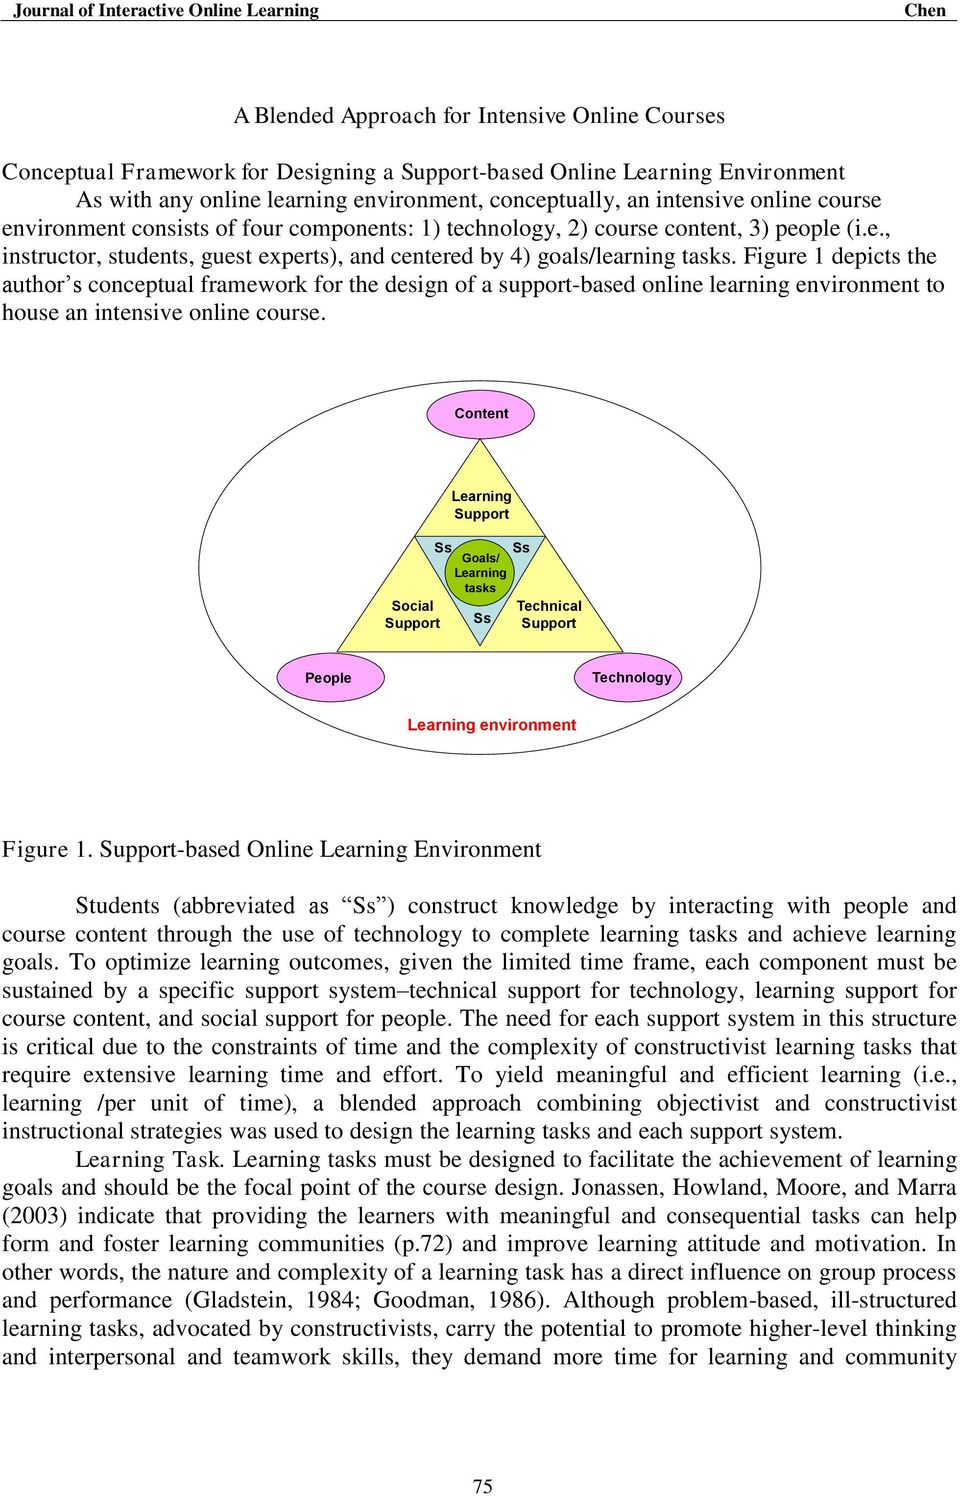 Figure 1 depicts the author s conceptual framework for the design of a support-based online learning environment to house an intensive online course.